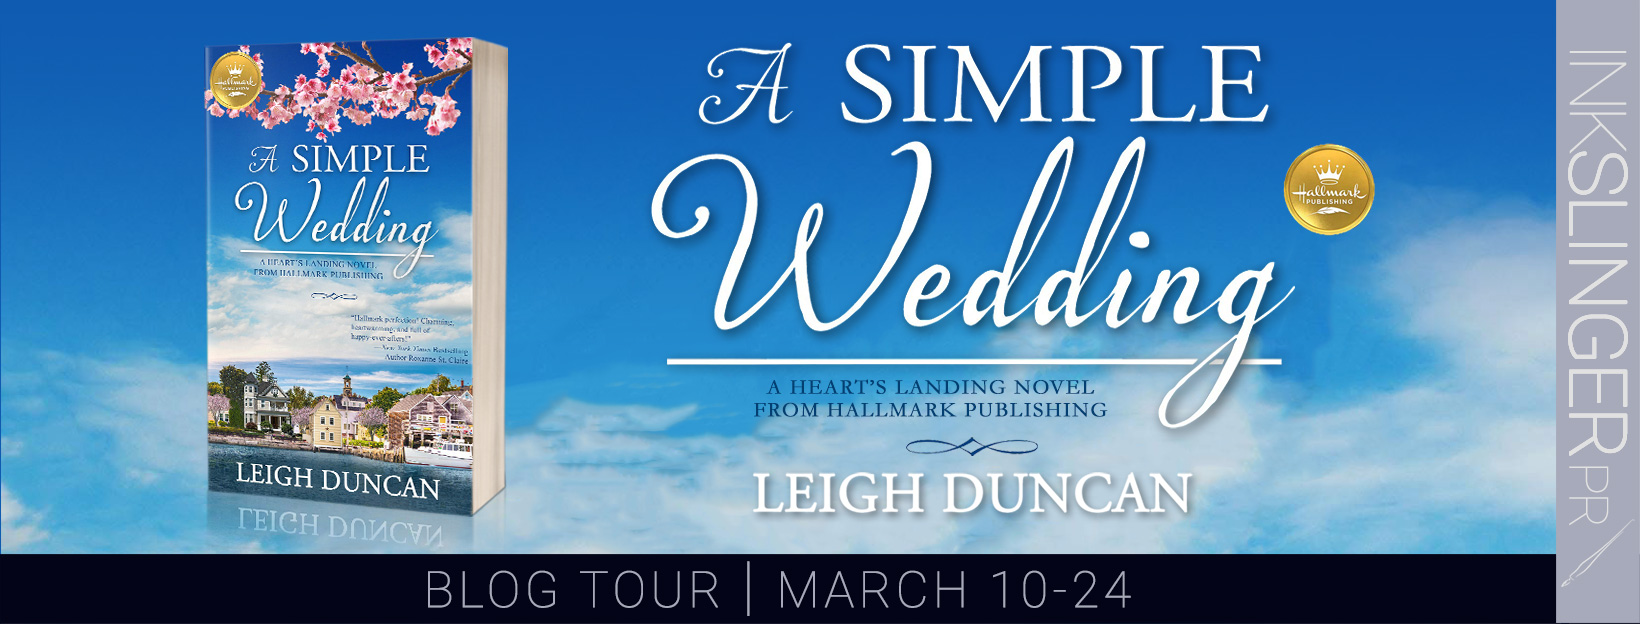 ASimpleWedding_blogtour